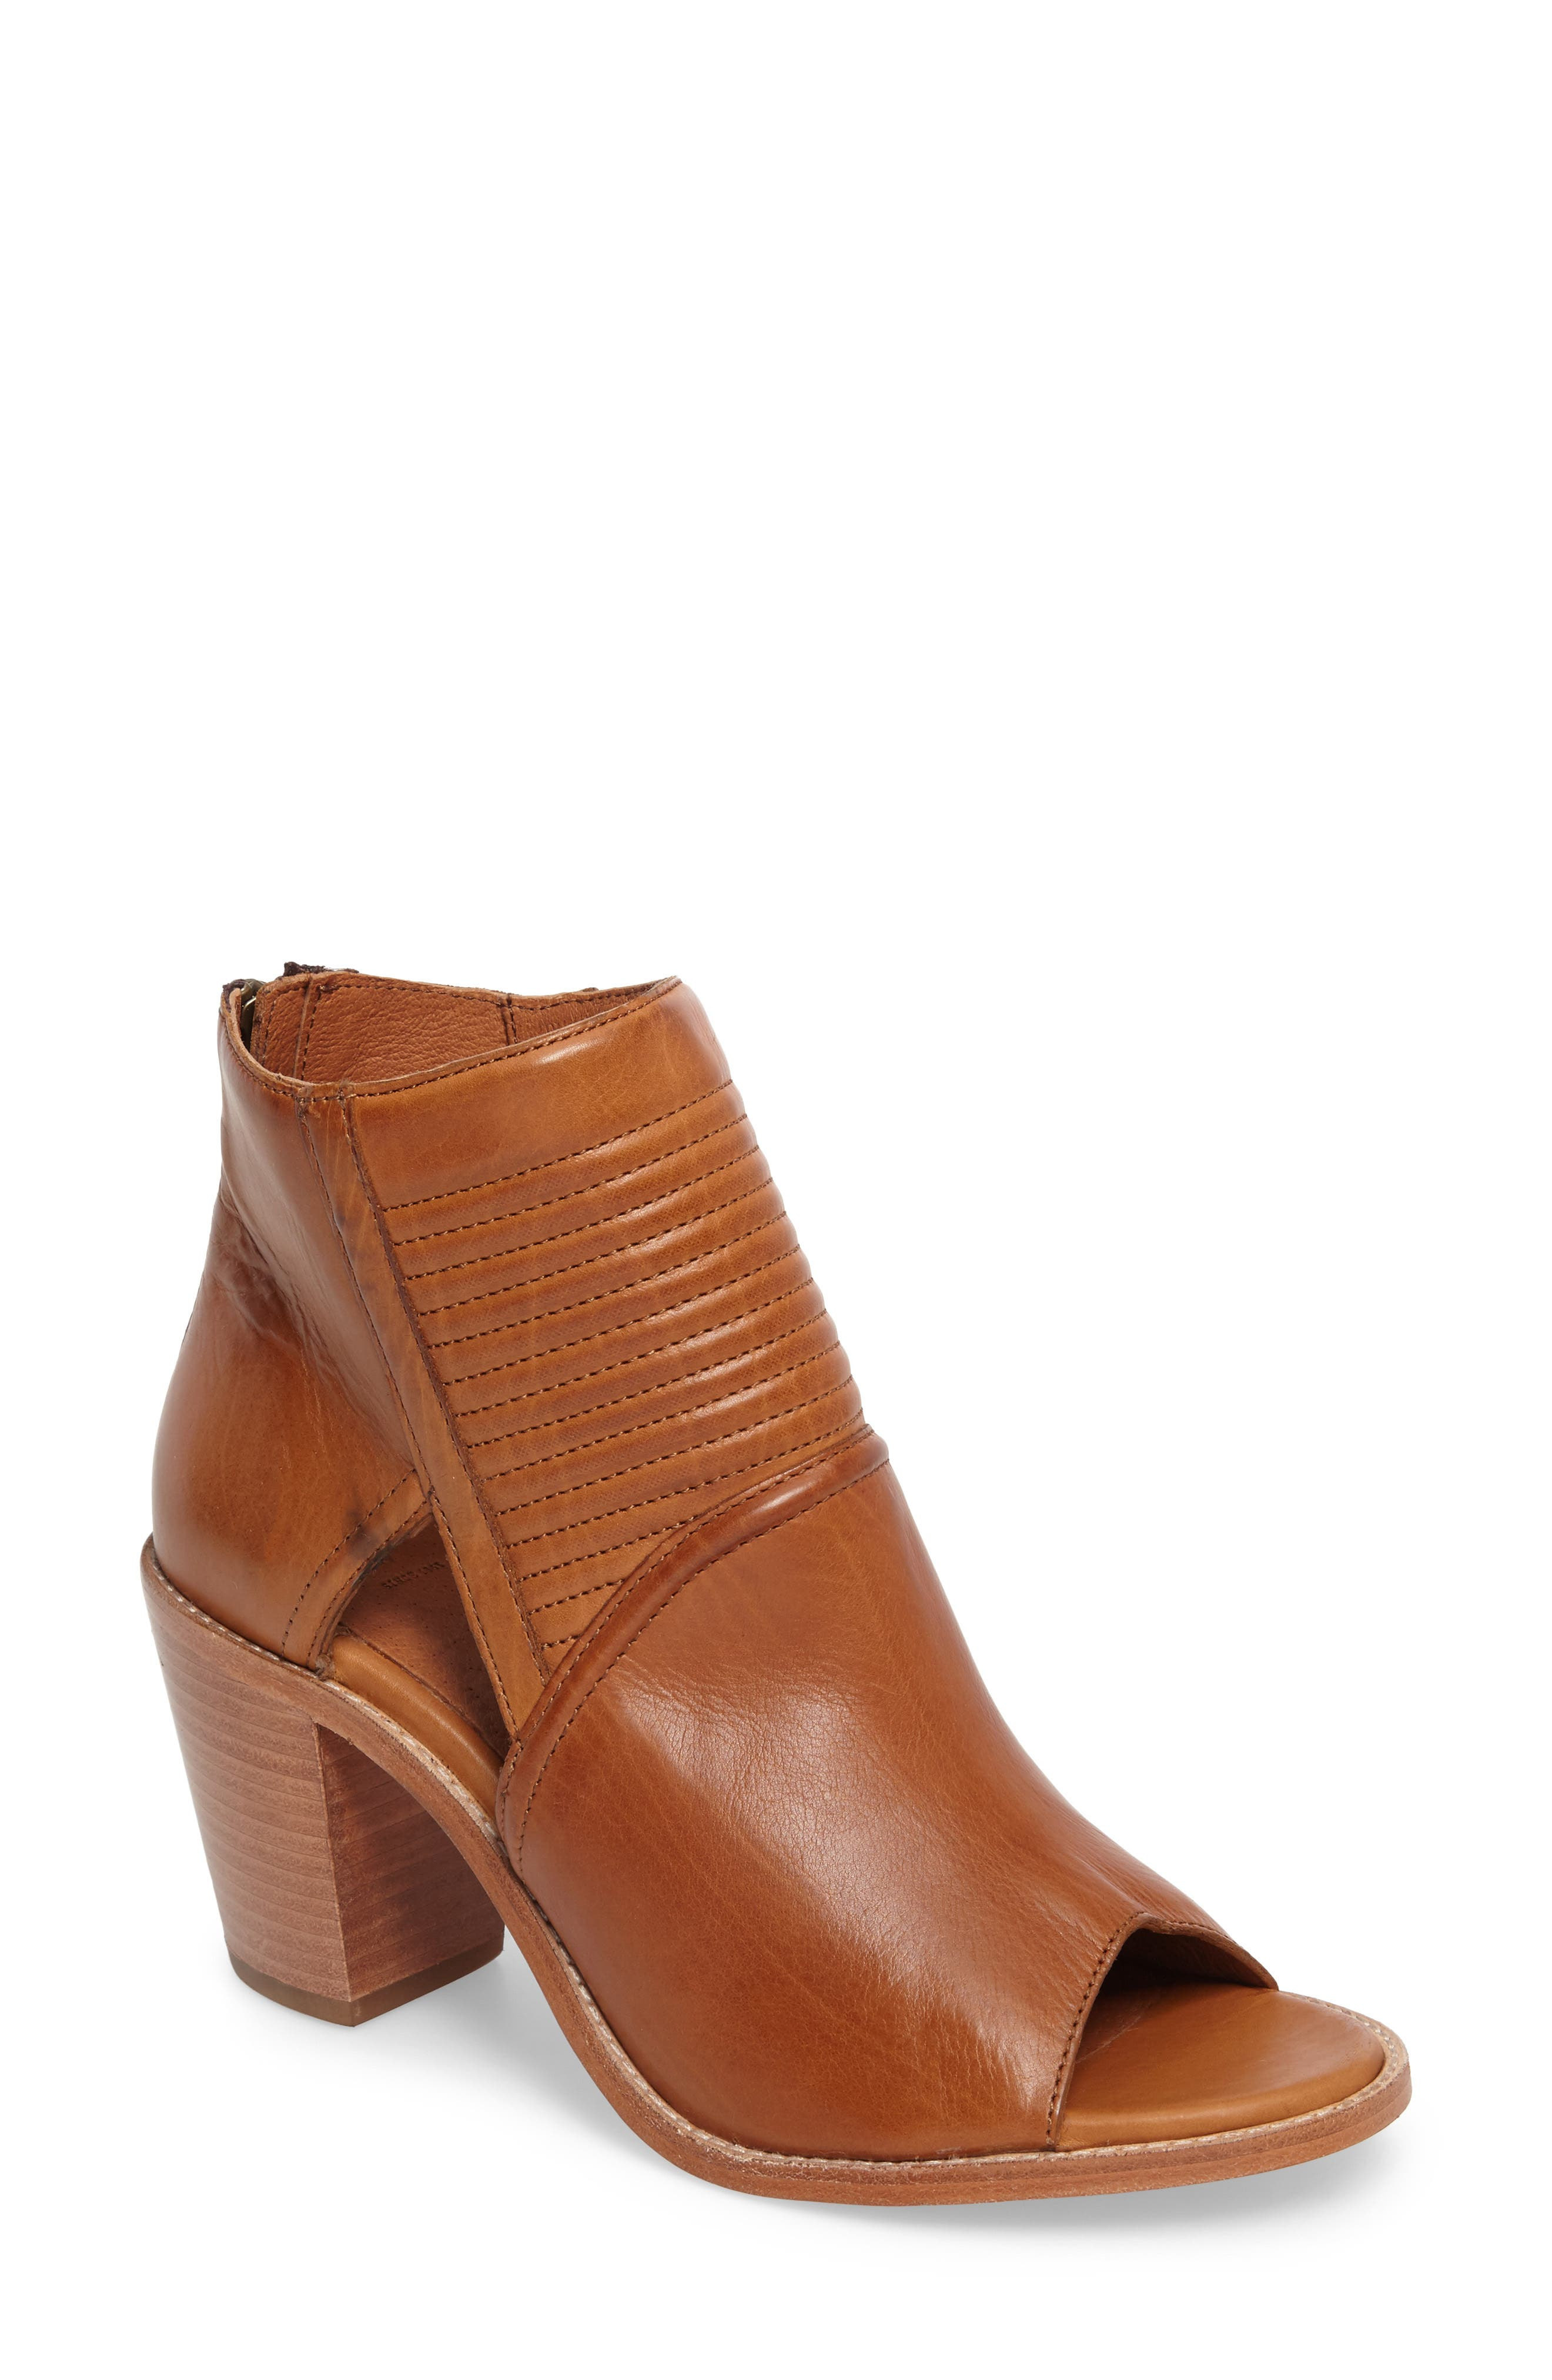 Bailey Quilted Peep Toe Bootie,                             Main thumbnail 1, color,                             Cognac